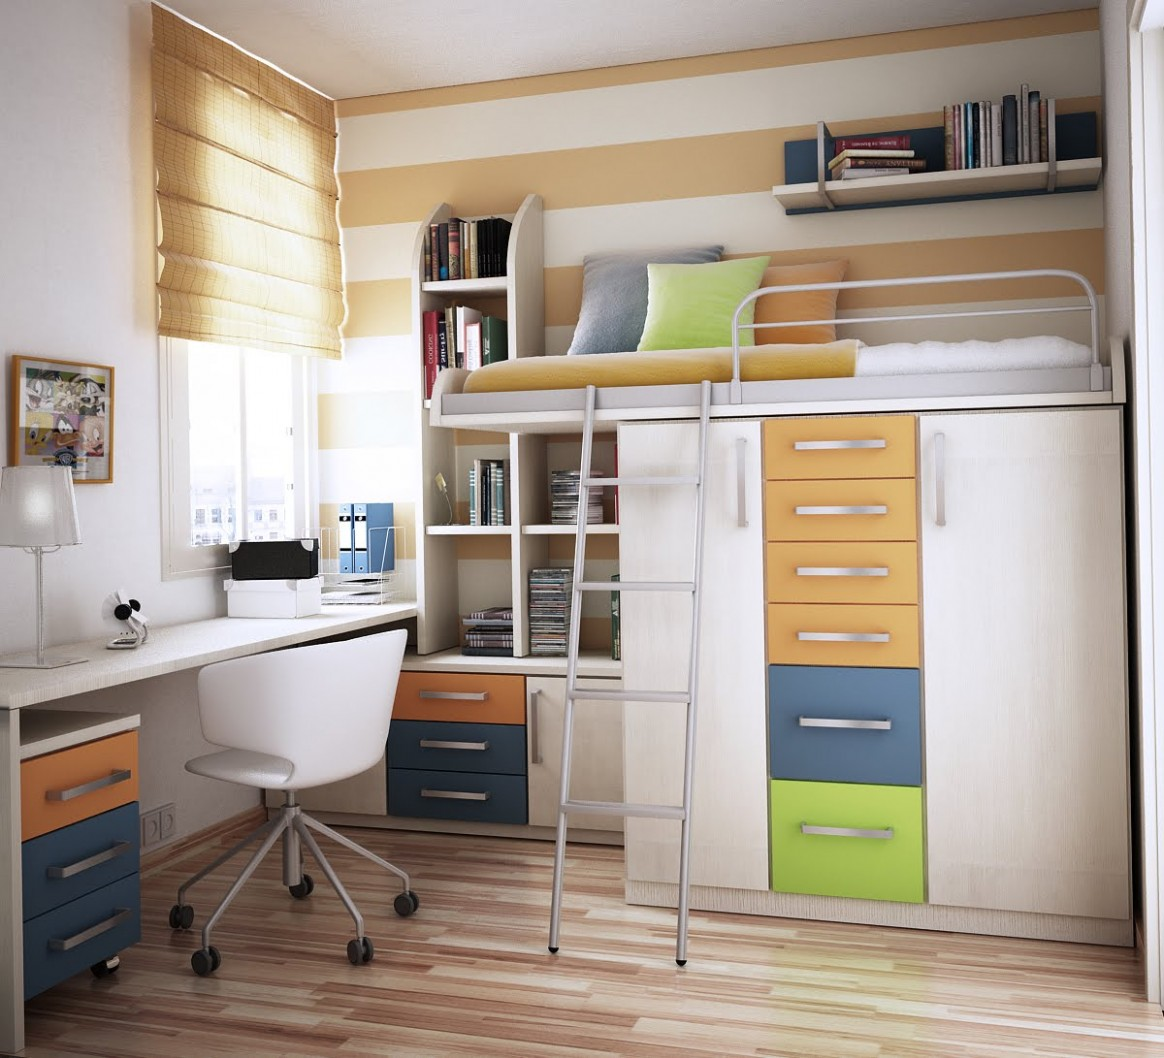 Space Saving Ideas for Small Kids Rooms - Bedroom Ideas Space Saving